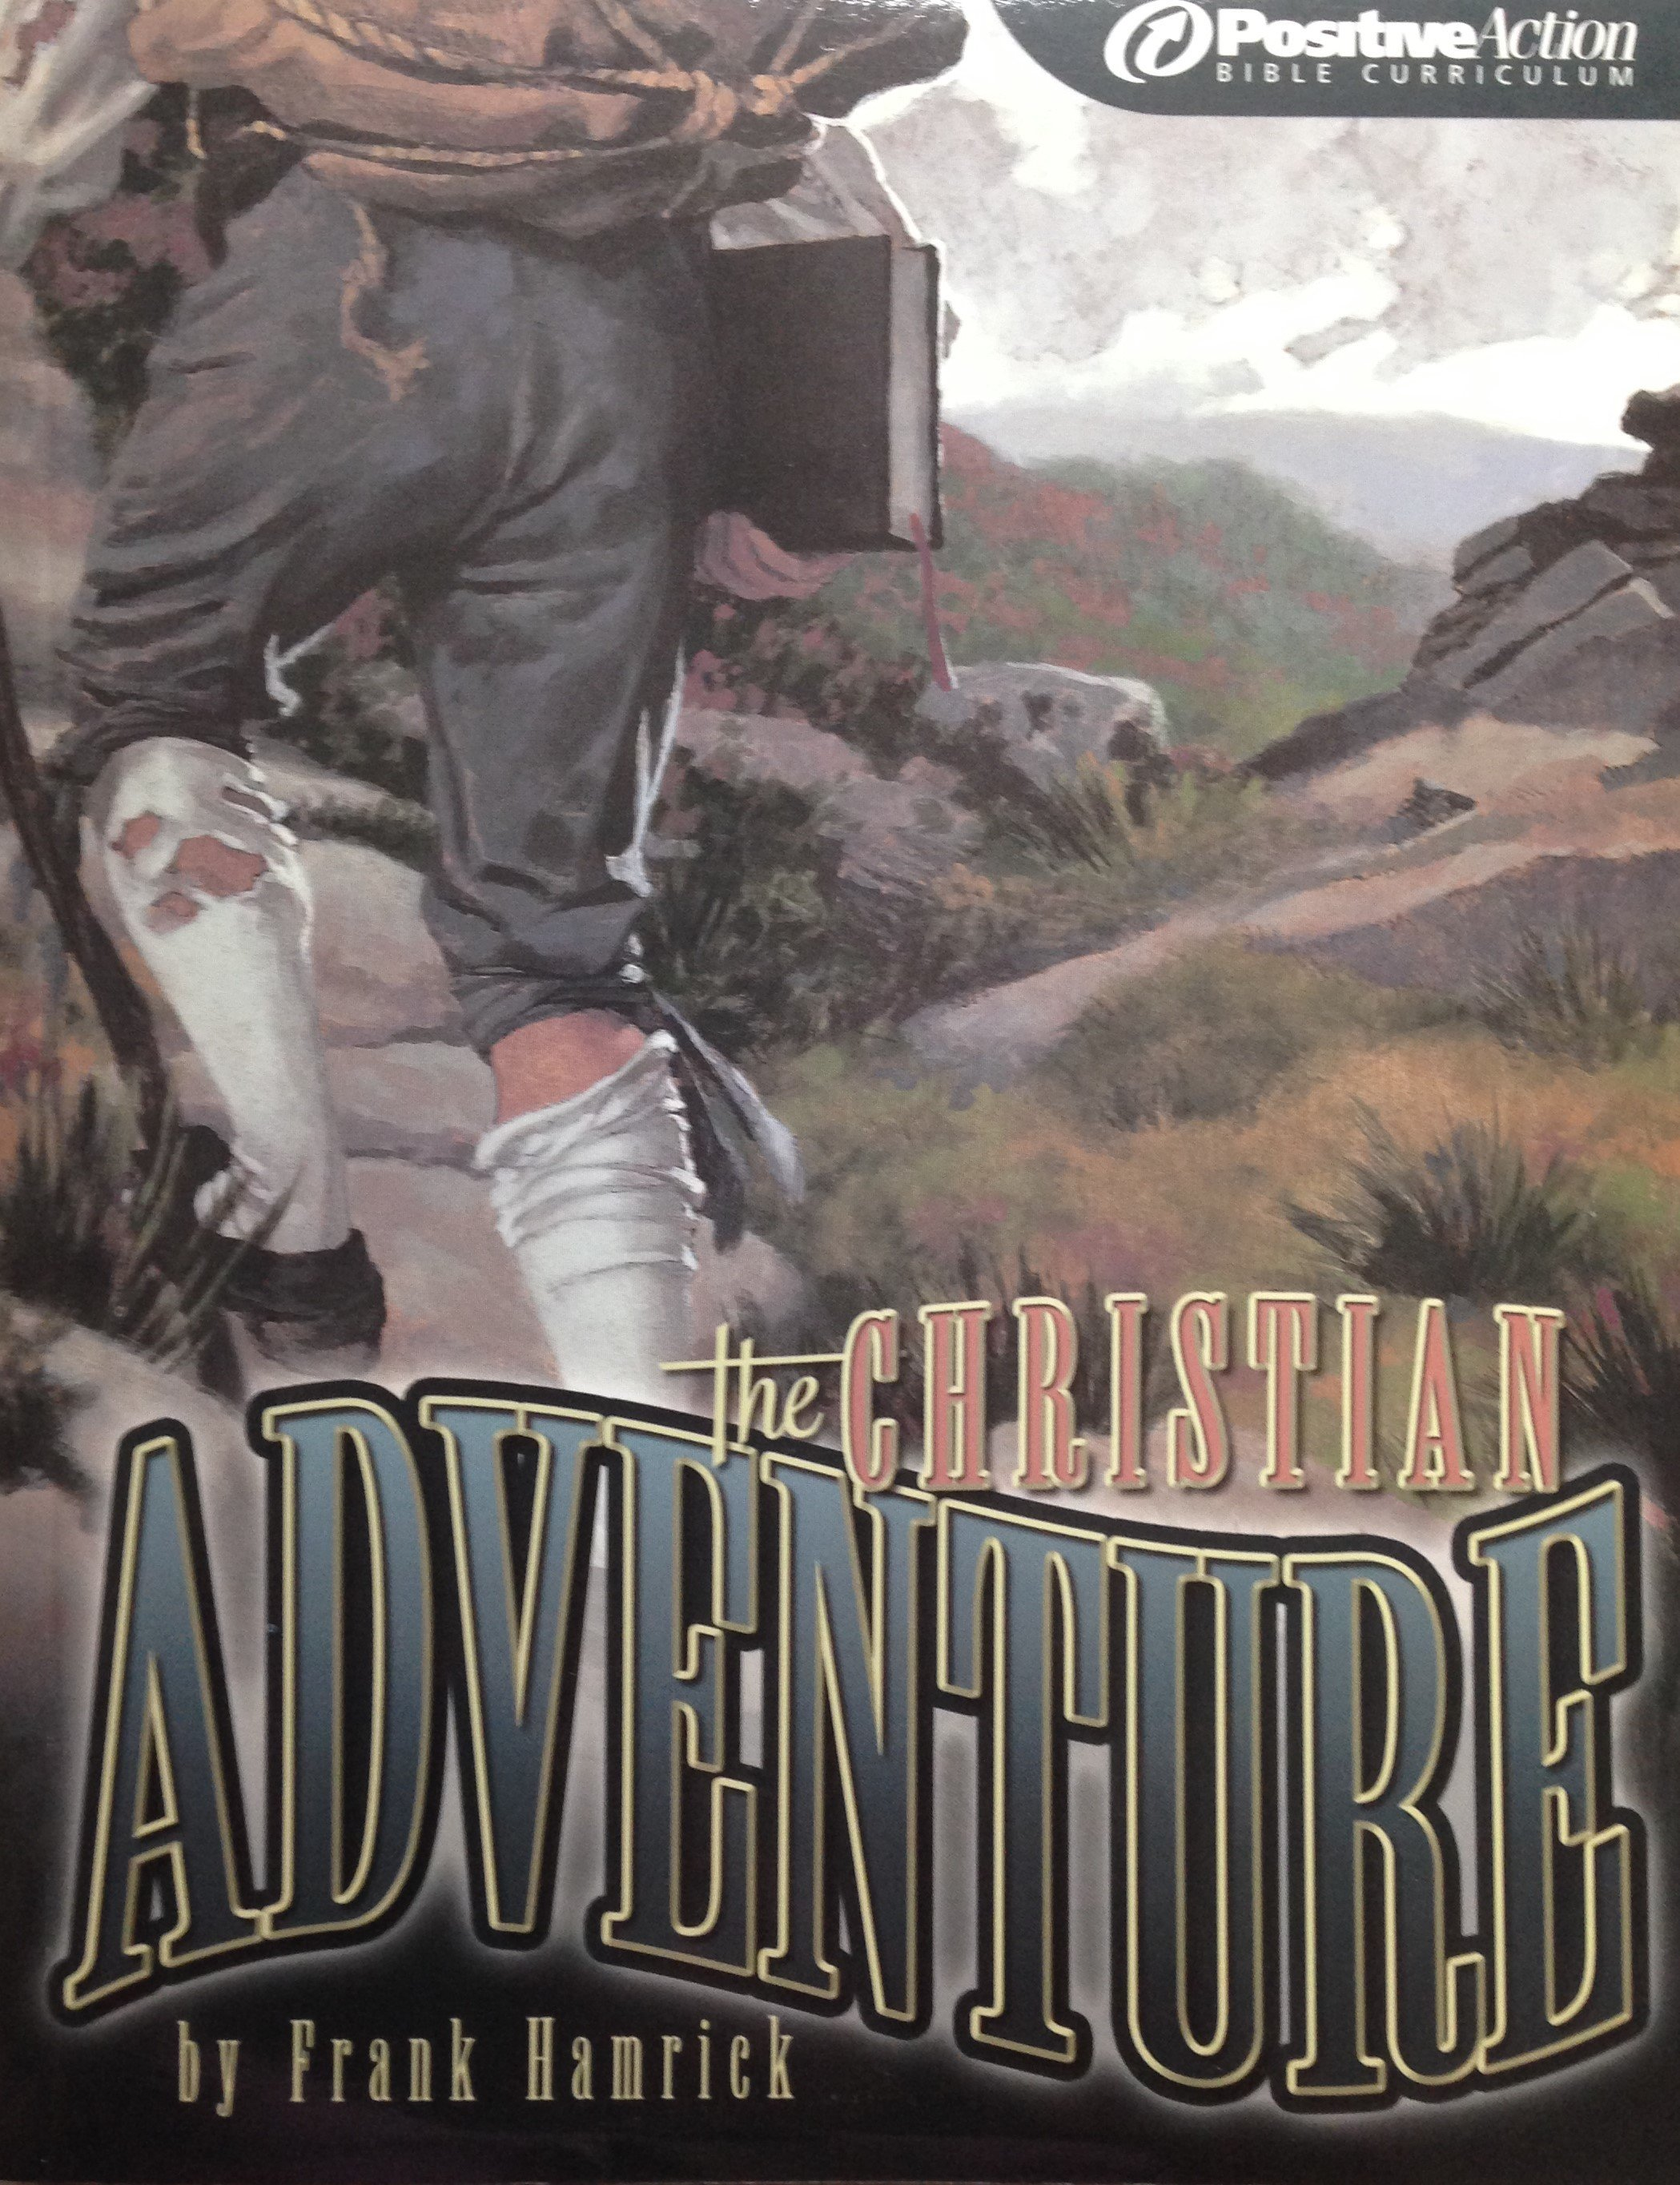 Positive Action Bible Curriculum:  The Christian Adventure by Frank Hamrick (Hardback) 00097